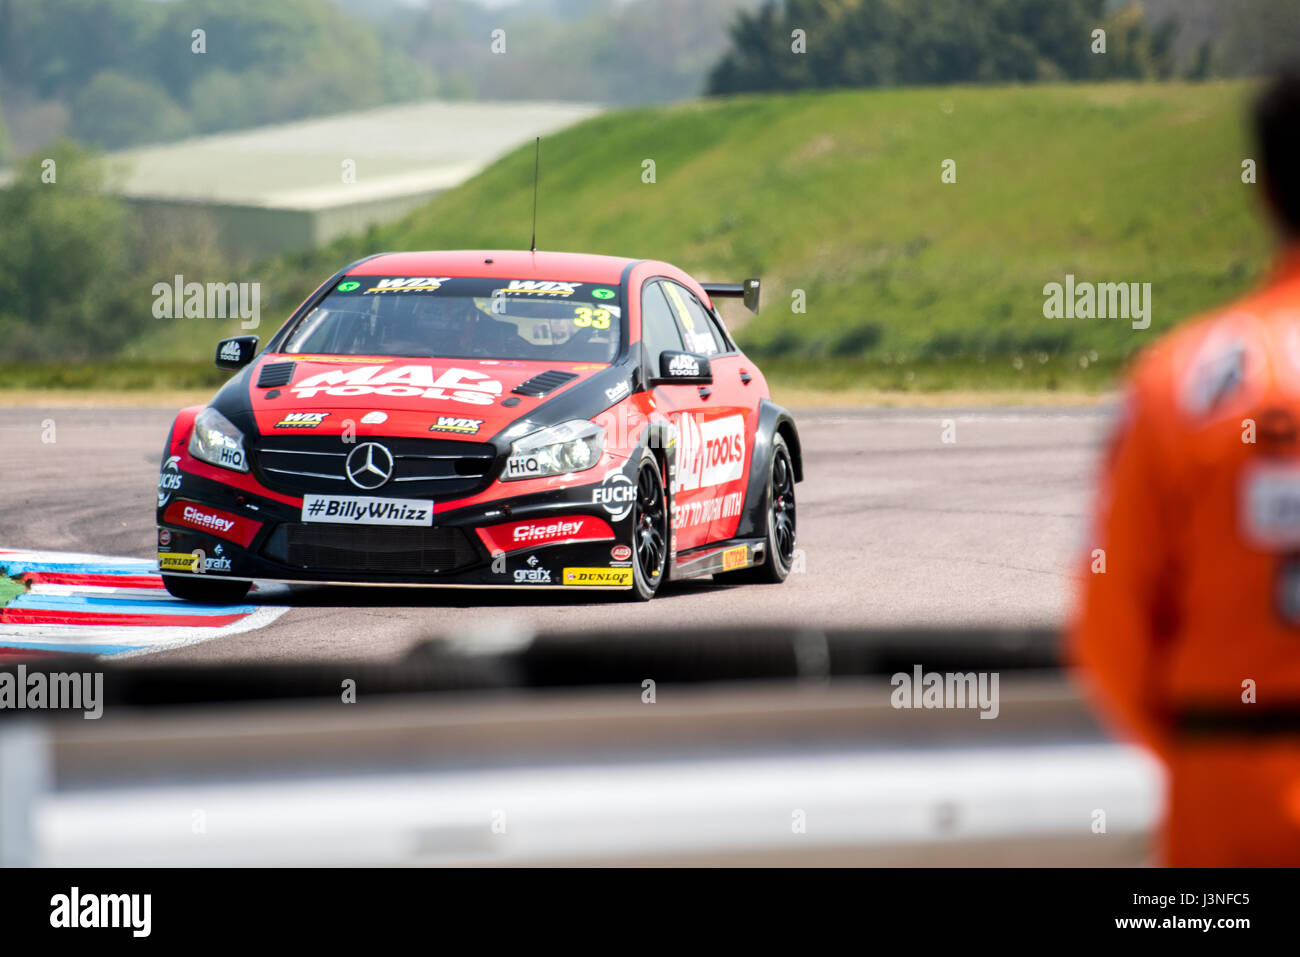 Hampshire, UK. 6th May, 2017. Thruxton Race Circuit and Motorsport Centre, Andover, Hampshire, United Kingdom. 6 - Stock Image